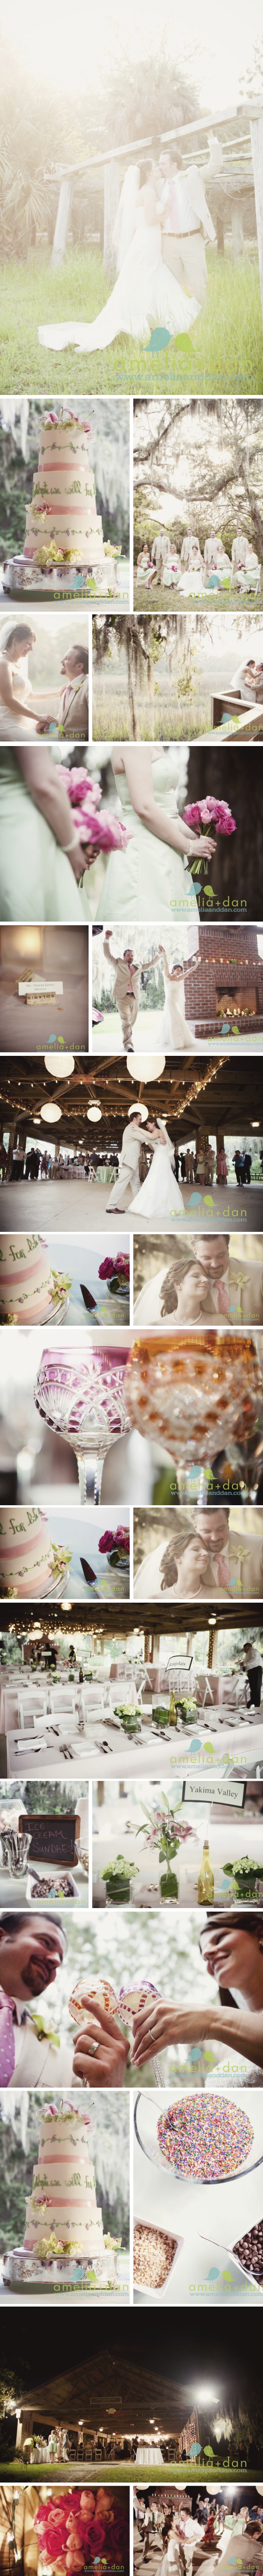 wedding blogs